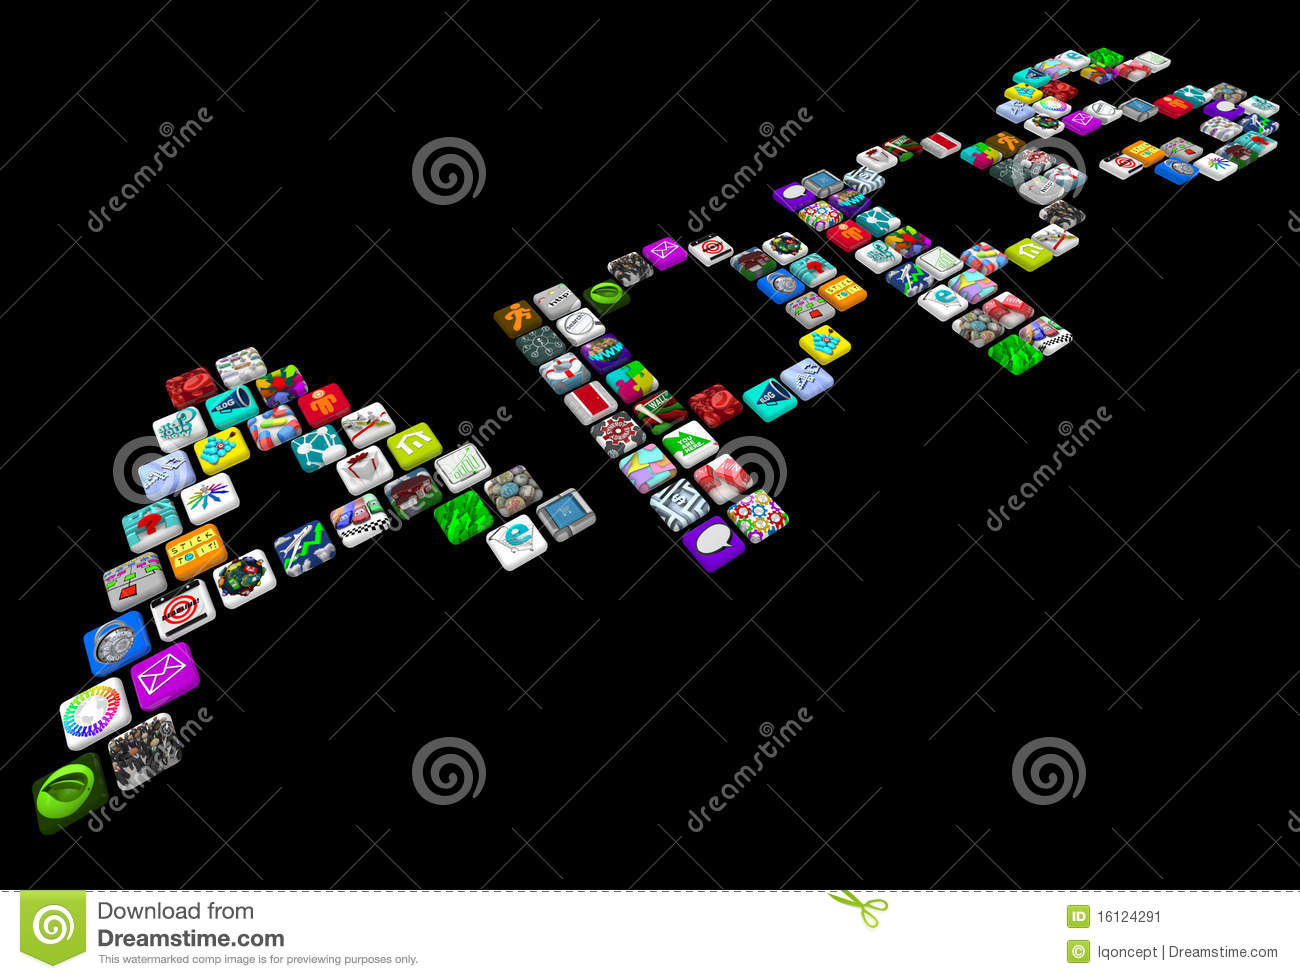 Apps many tile icons of smart phone applications stock for Tile layout app